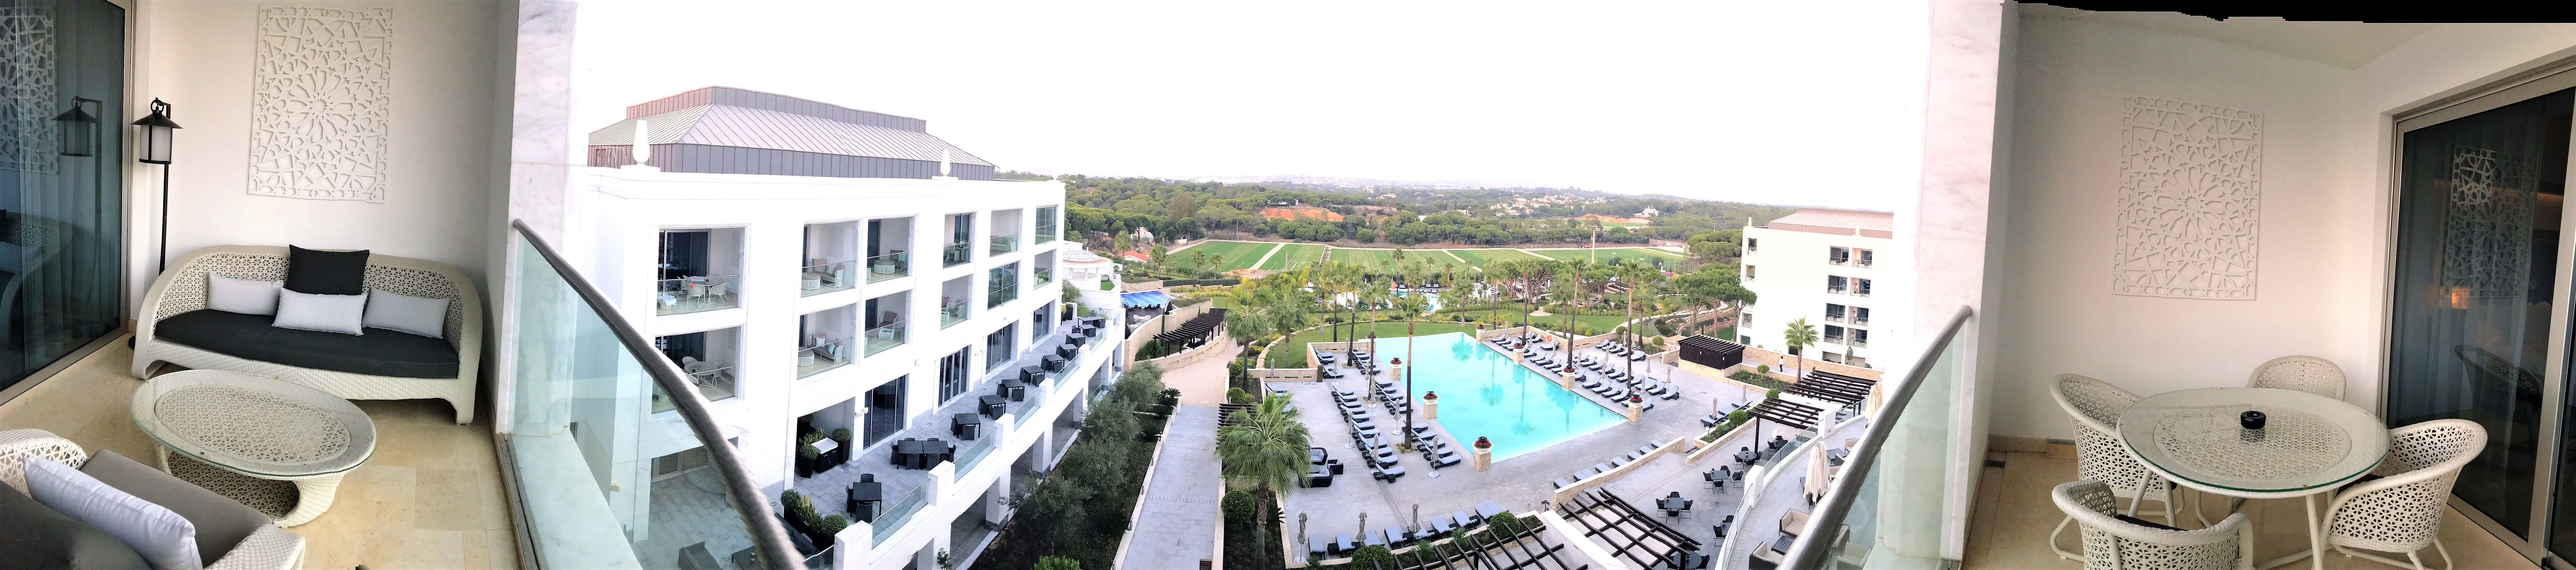 Conrad Algarve Hotel review gusto by Heinz Beck